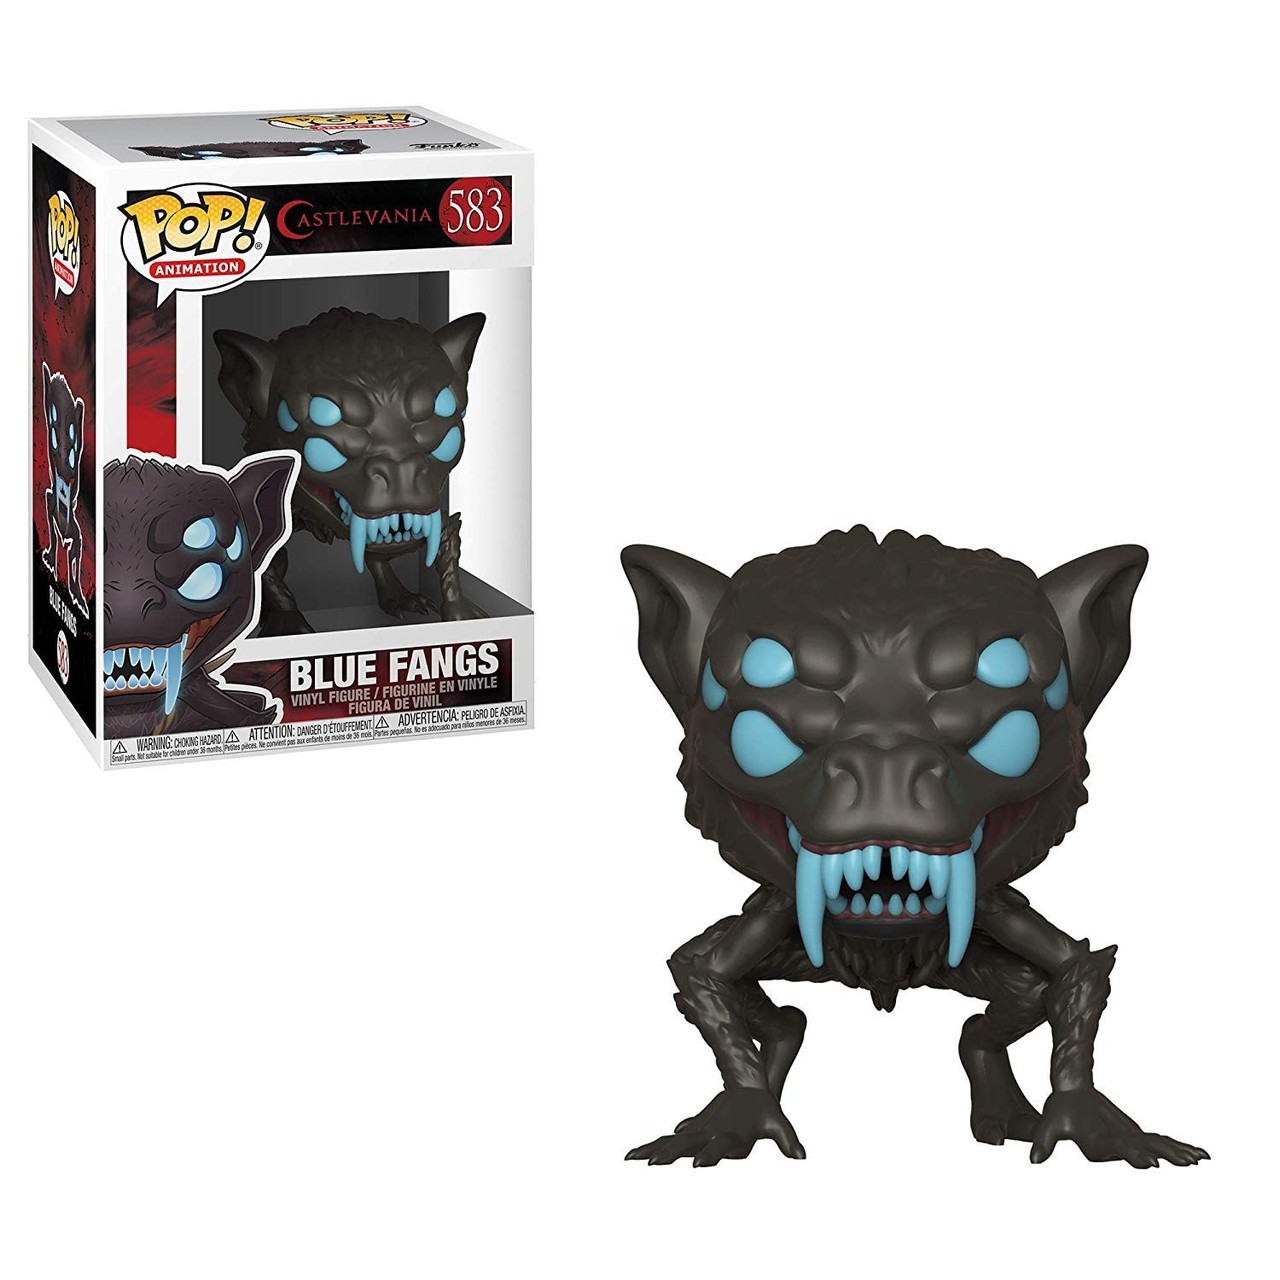 Funko POP! Castlevania Blue Fangs #583